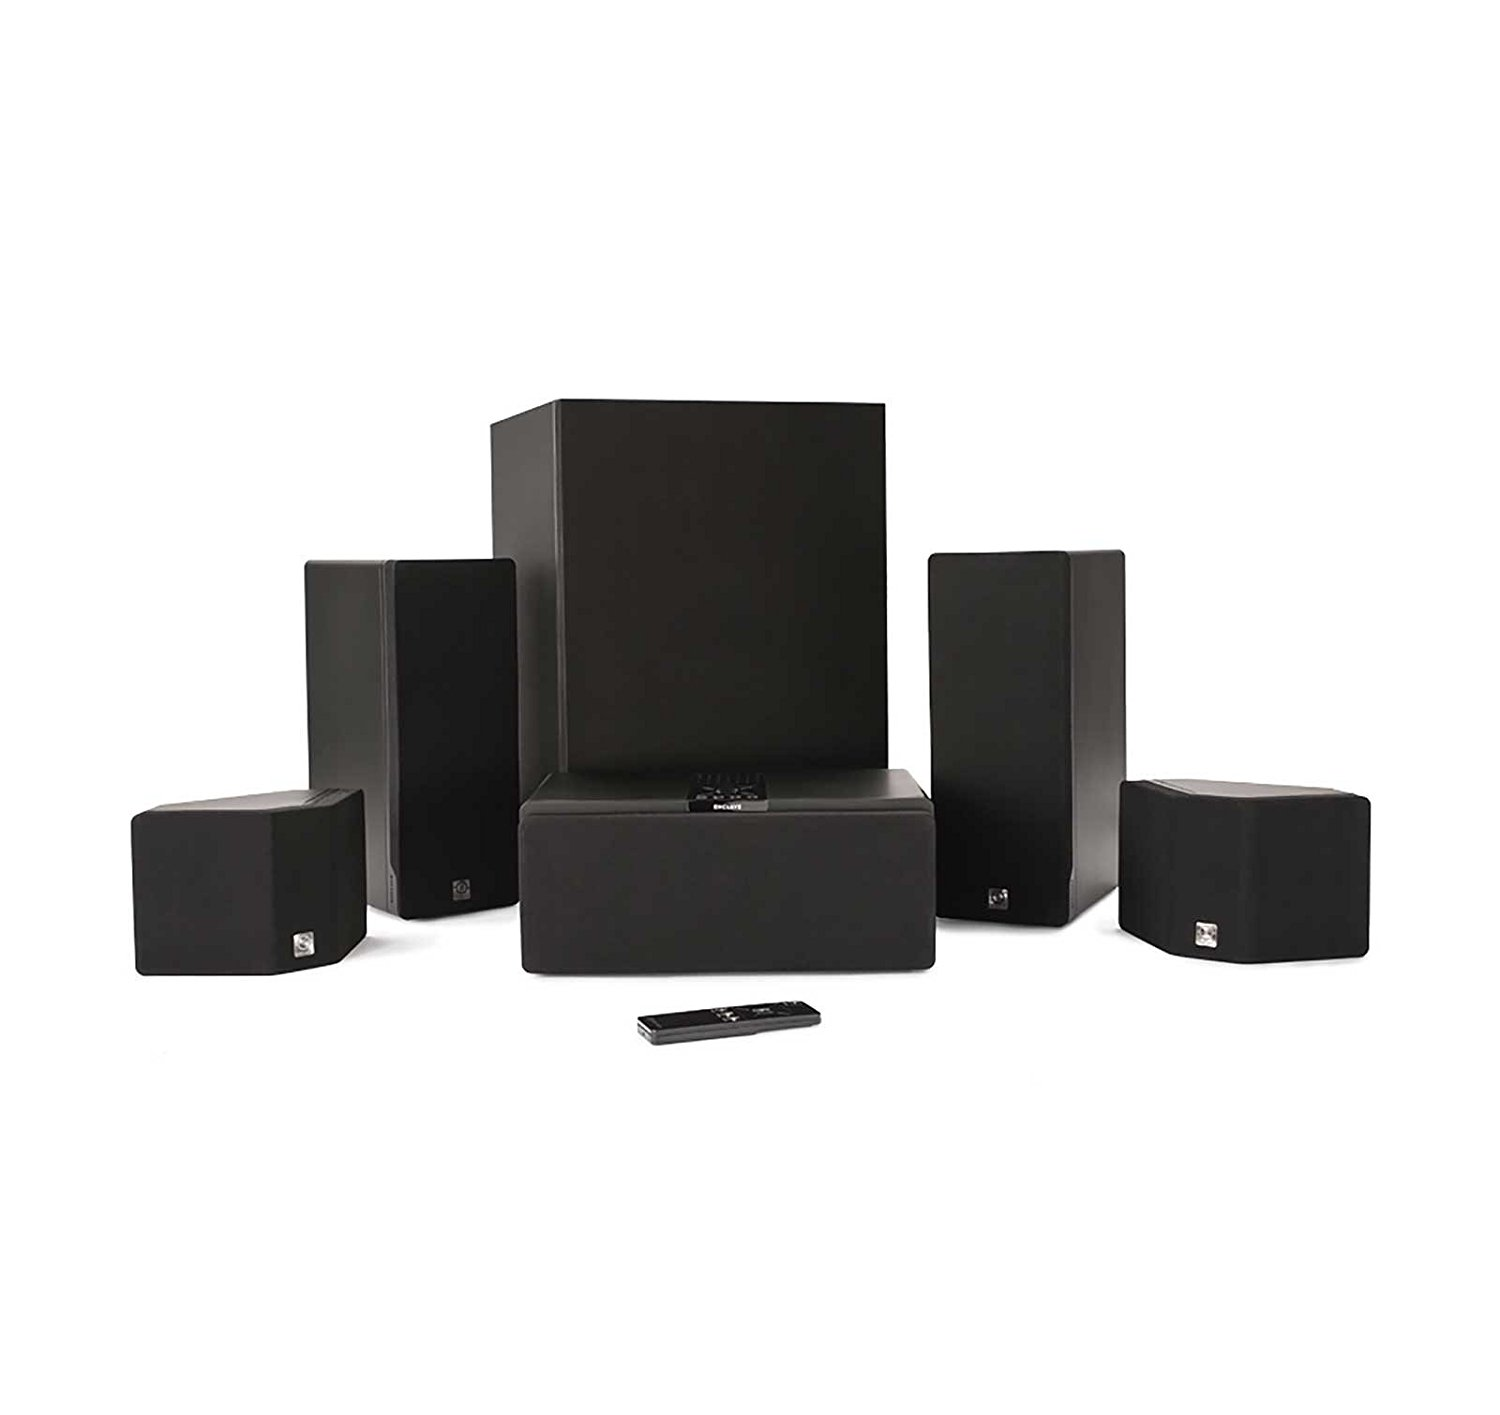 Best 5.1 Home Theater System 2017 1